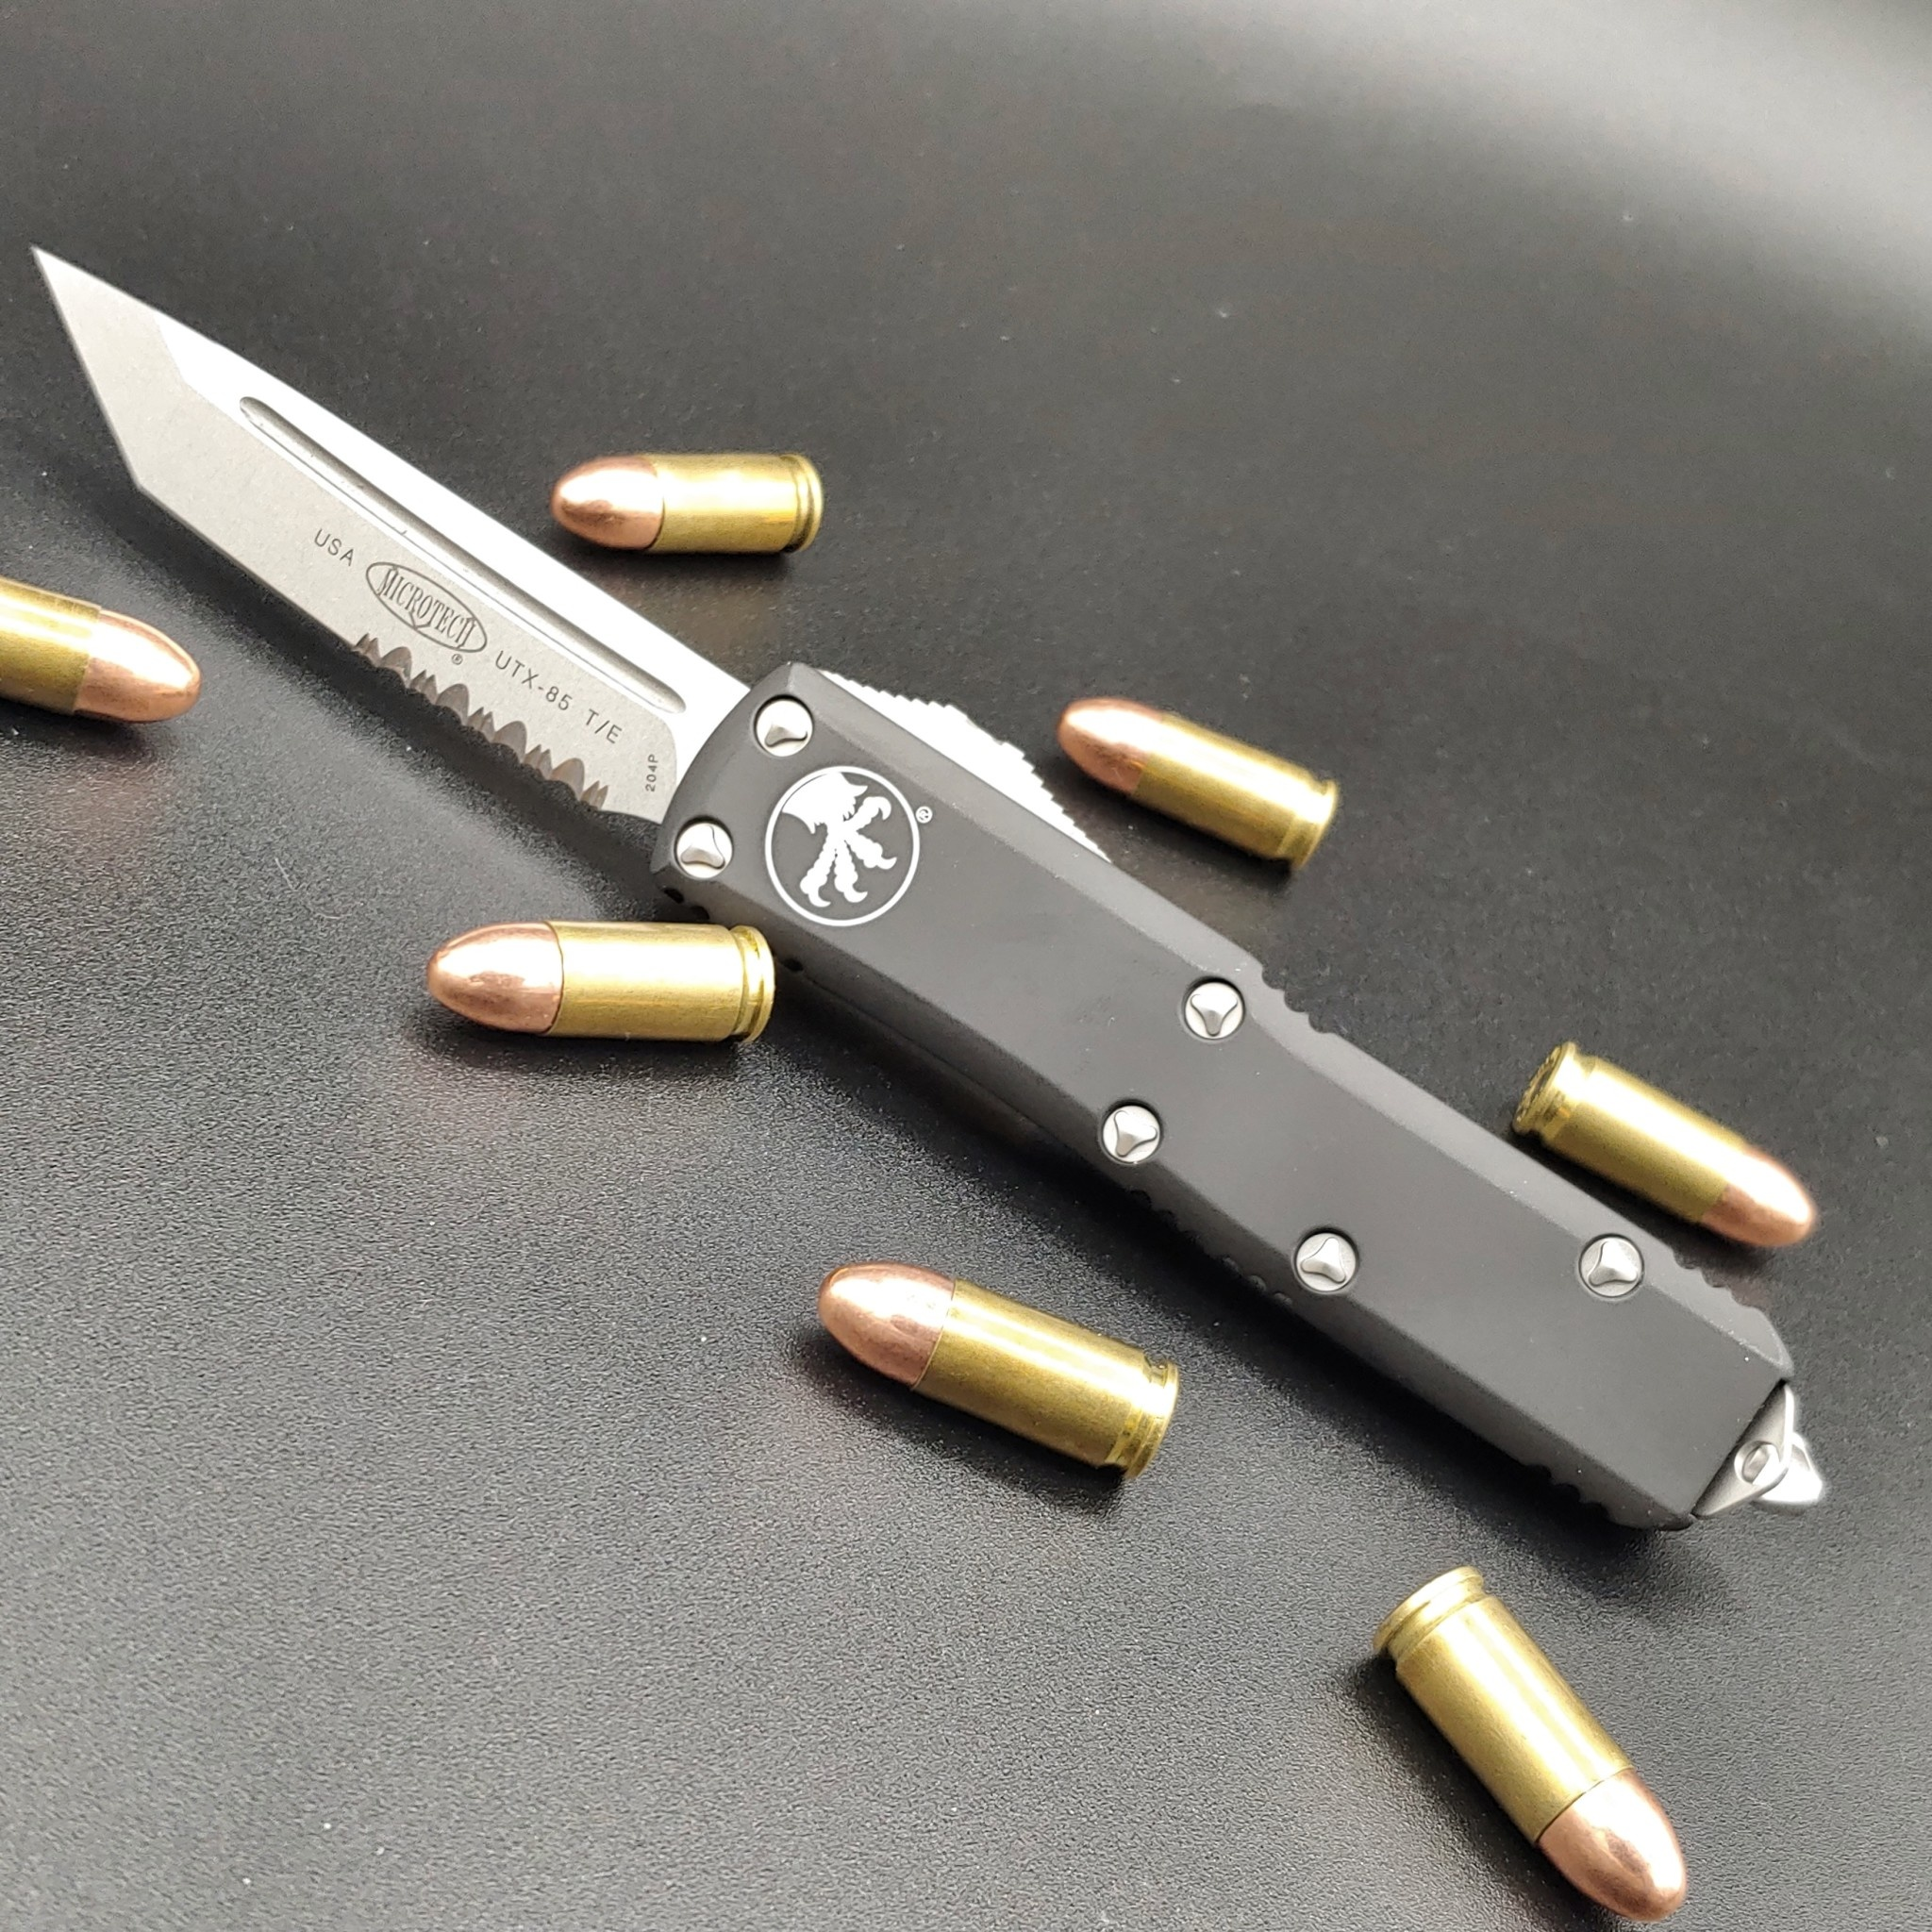 Sold Out - Microtech UTX-85, blade - tanto edge partial serrated stonewashed